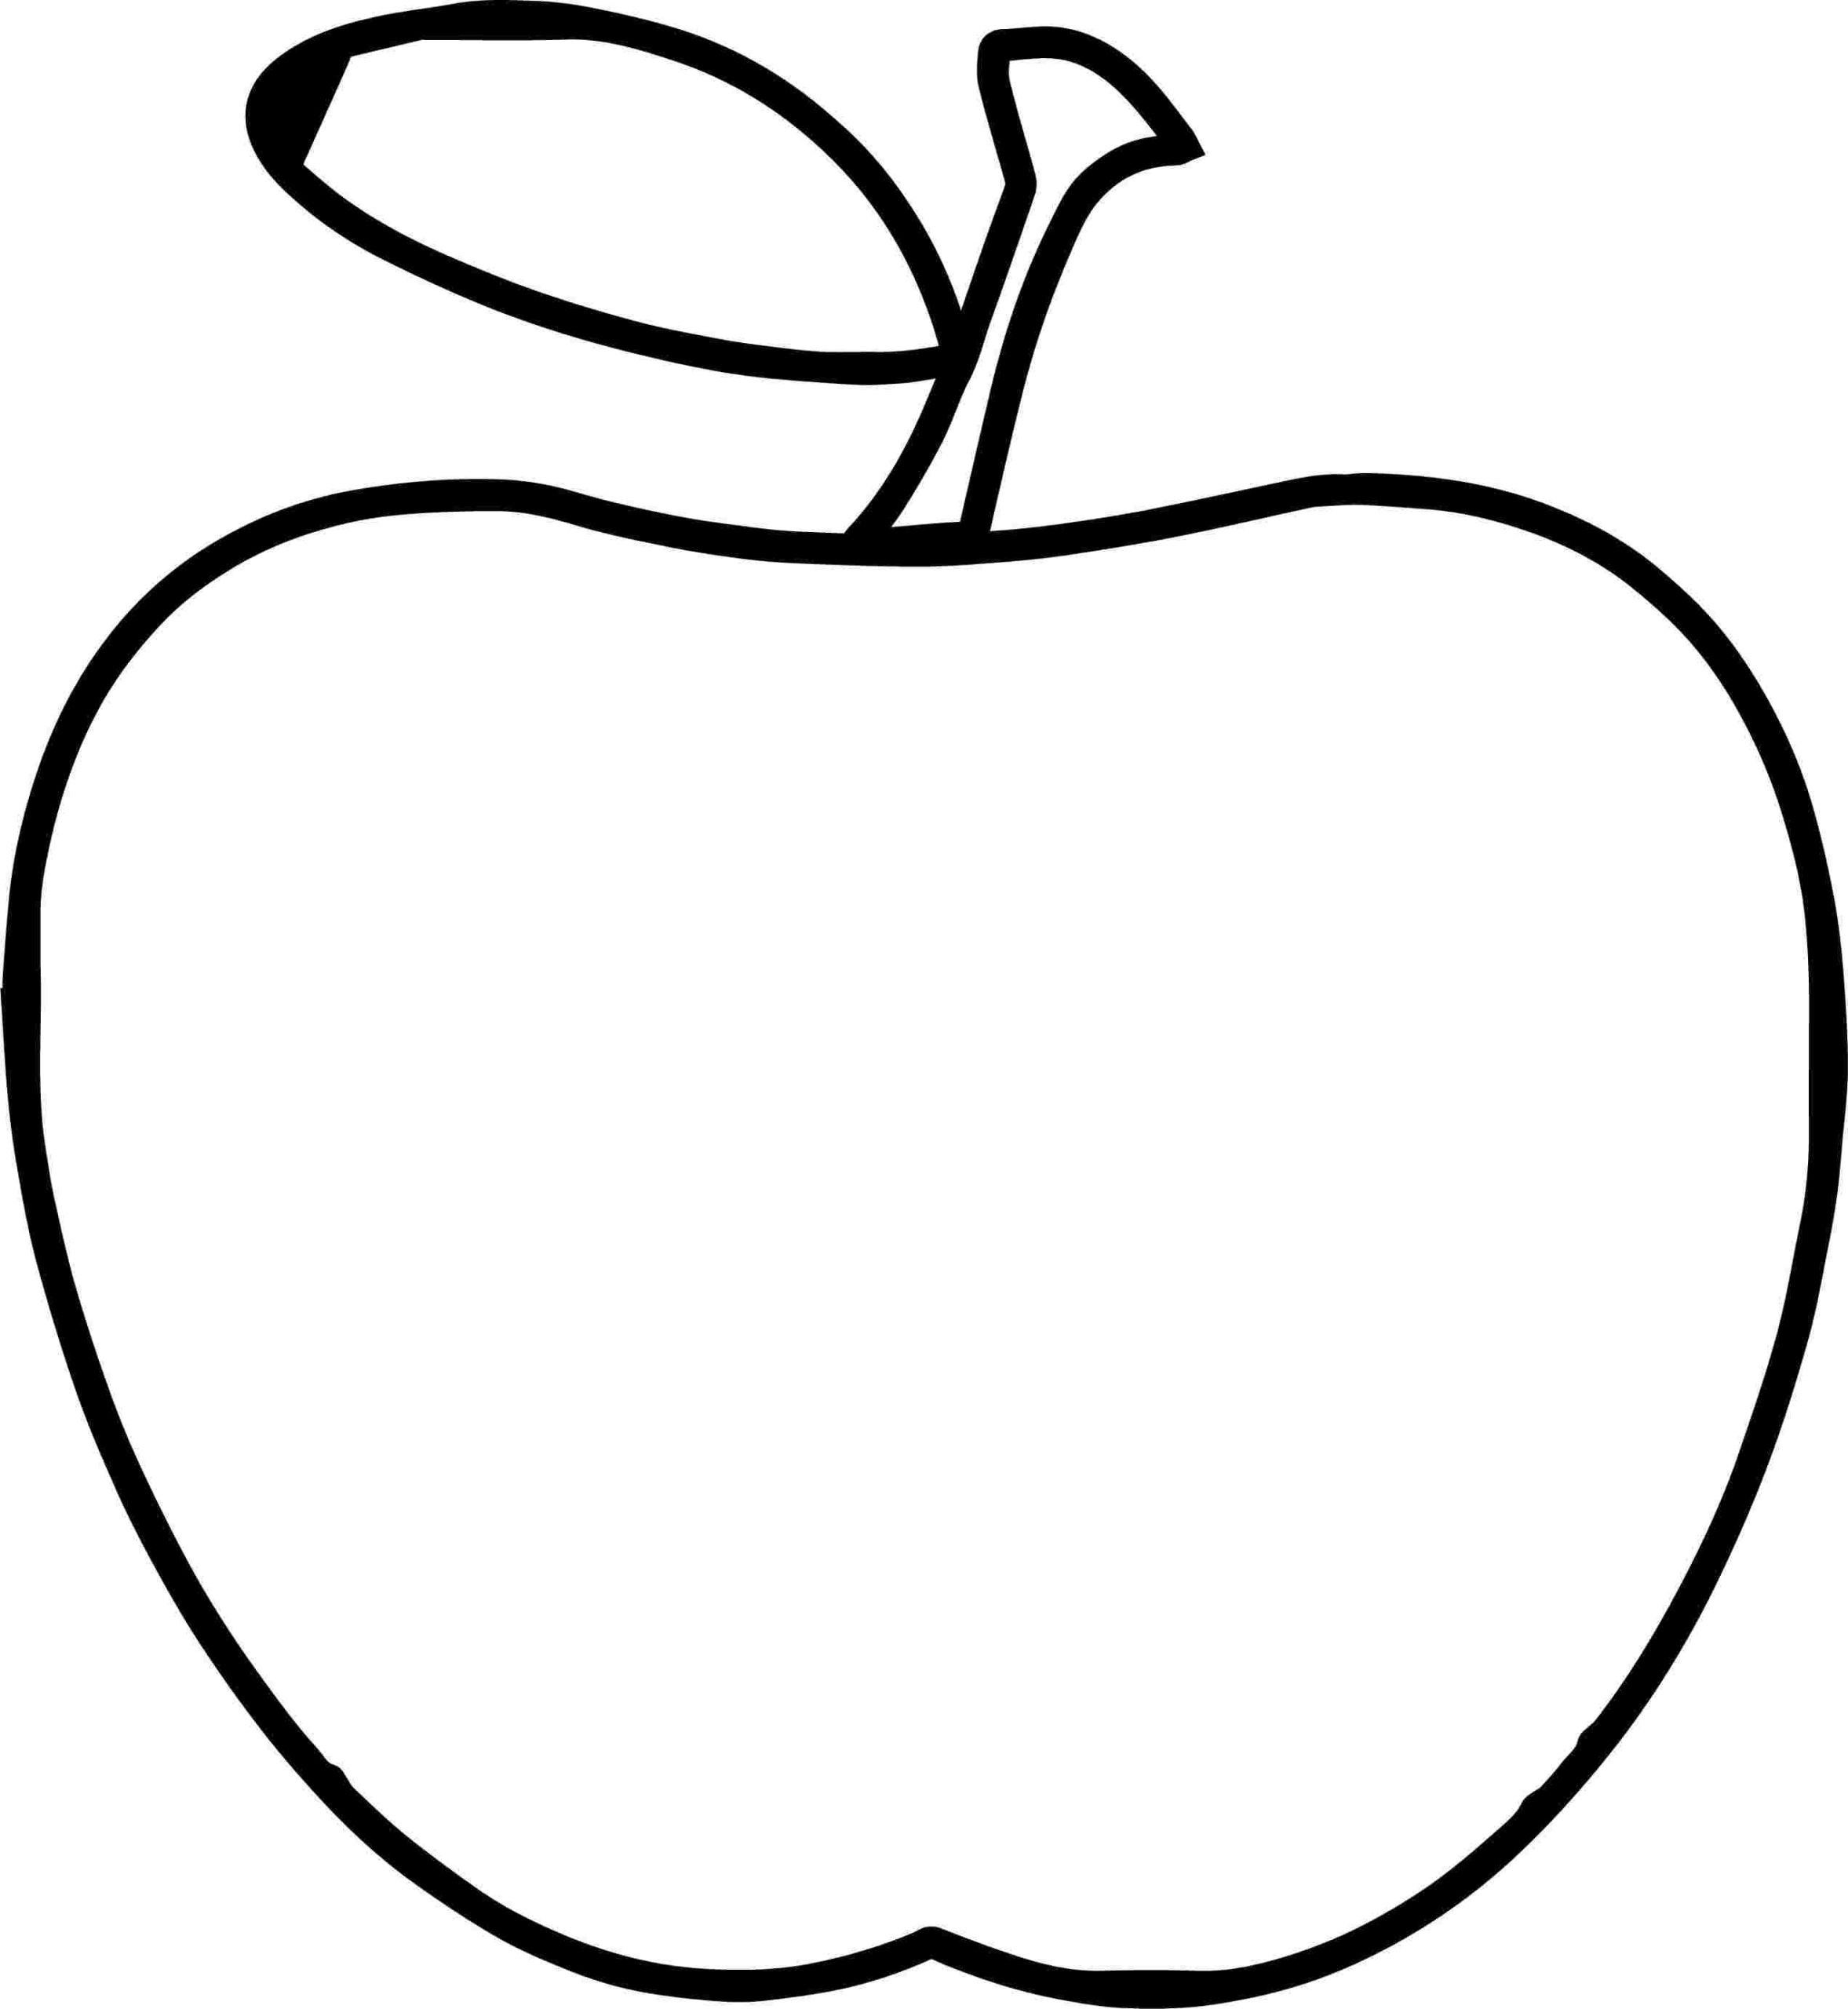 Apple Worksheets Preschool Remarkable Easy Coloring for Kids Apple to Print Super